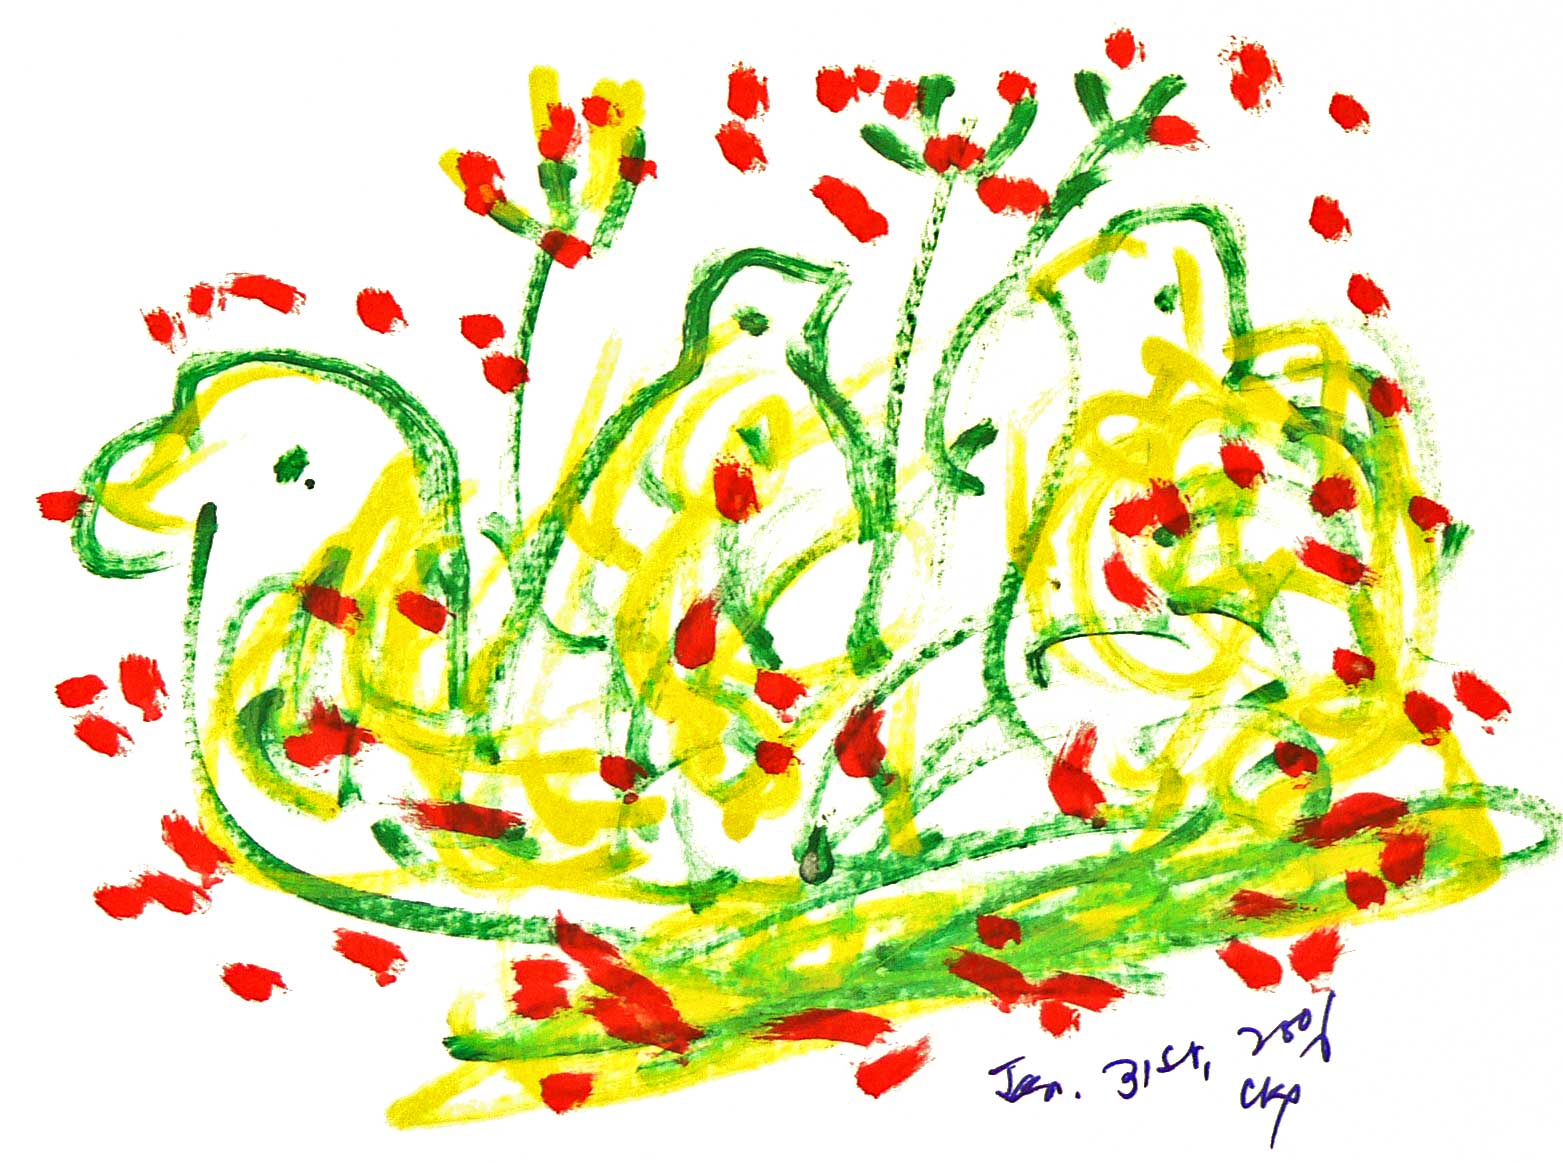 Bird-Drawing-by-Sri-Chinmoy-31-1-2006-12